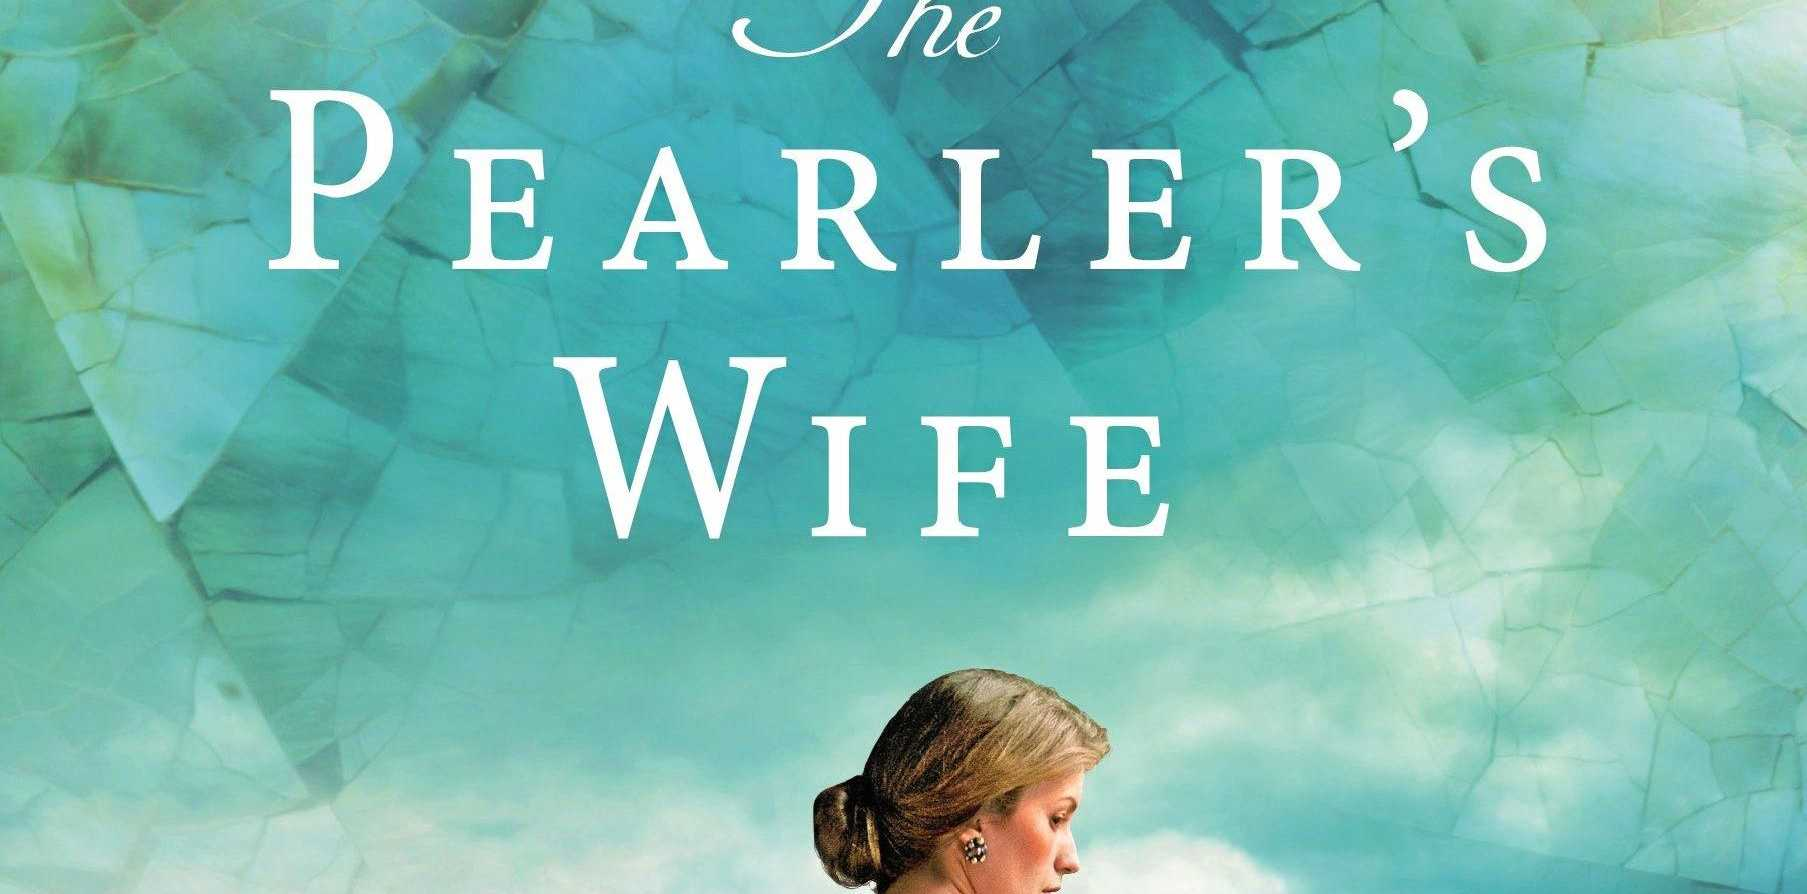 NEW BOOKS: The Pearler's Wife. A distant land. A dangerous husband. A forbidden love.